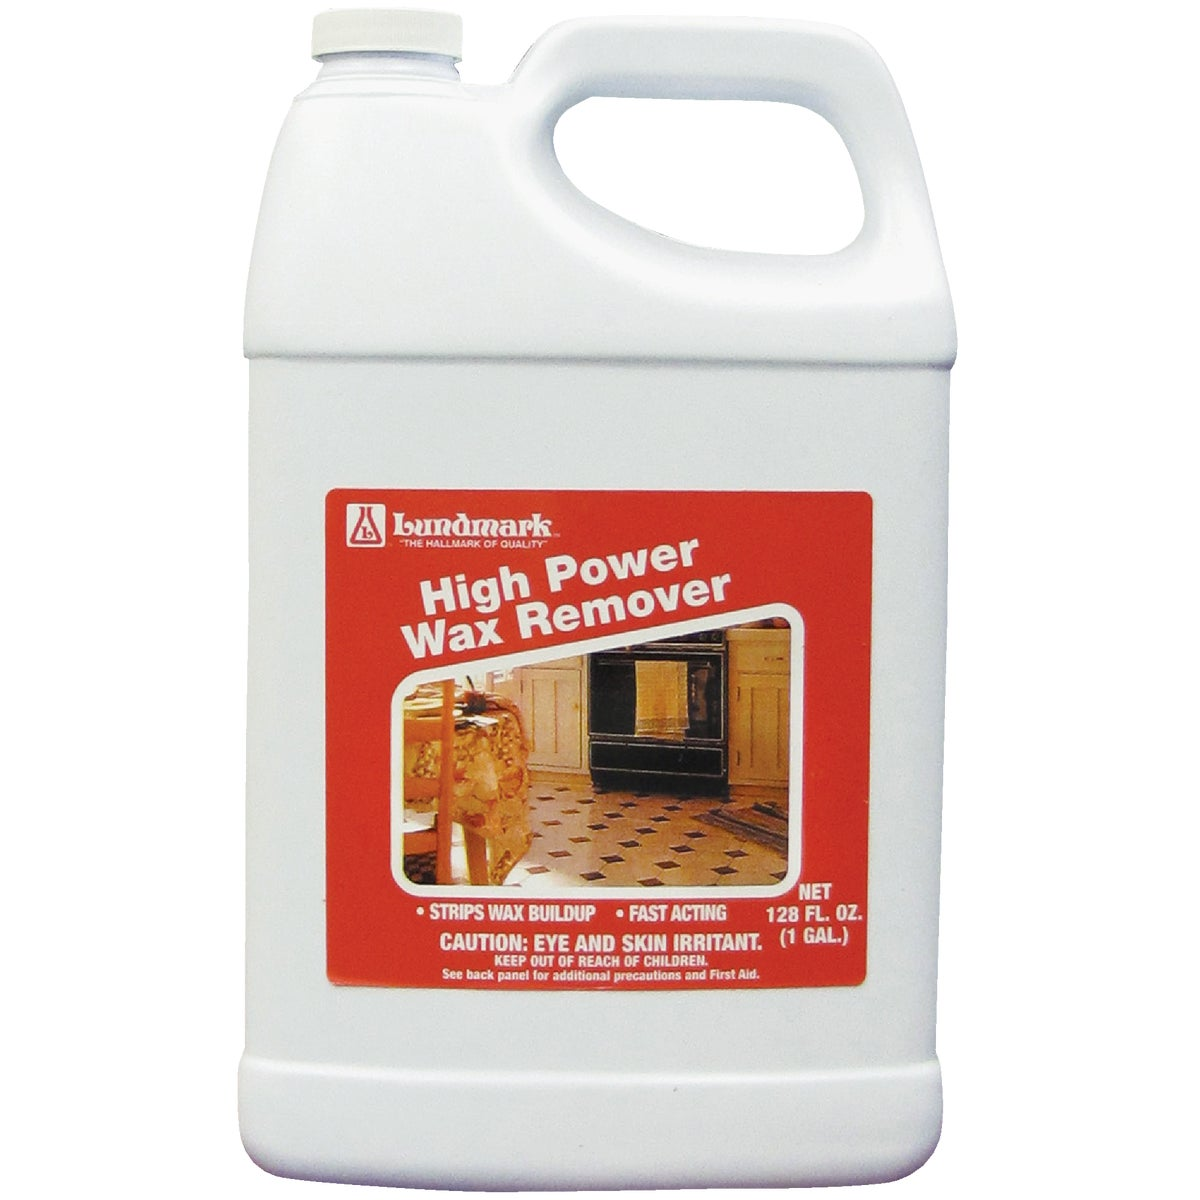 High Power Wax Remover